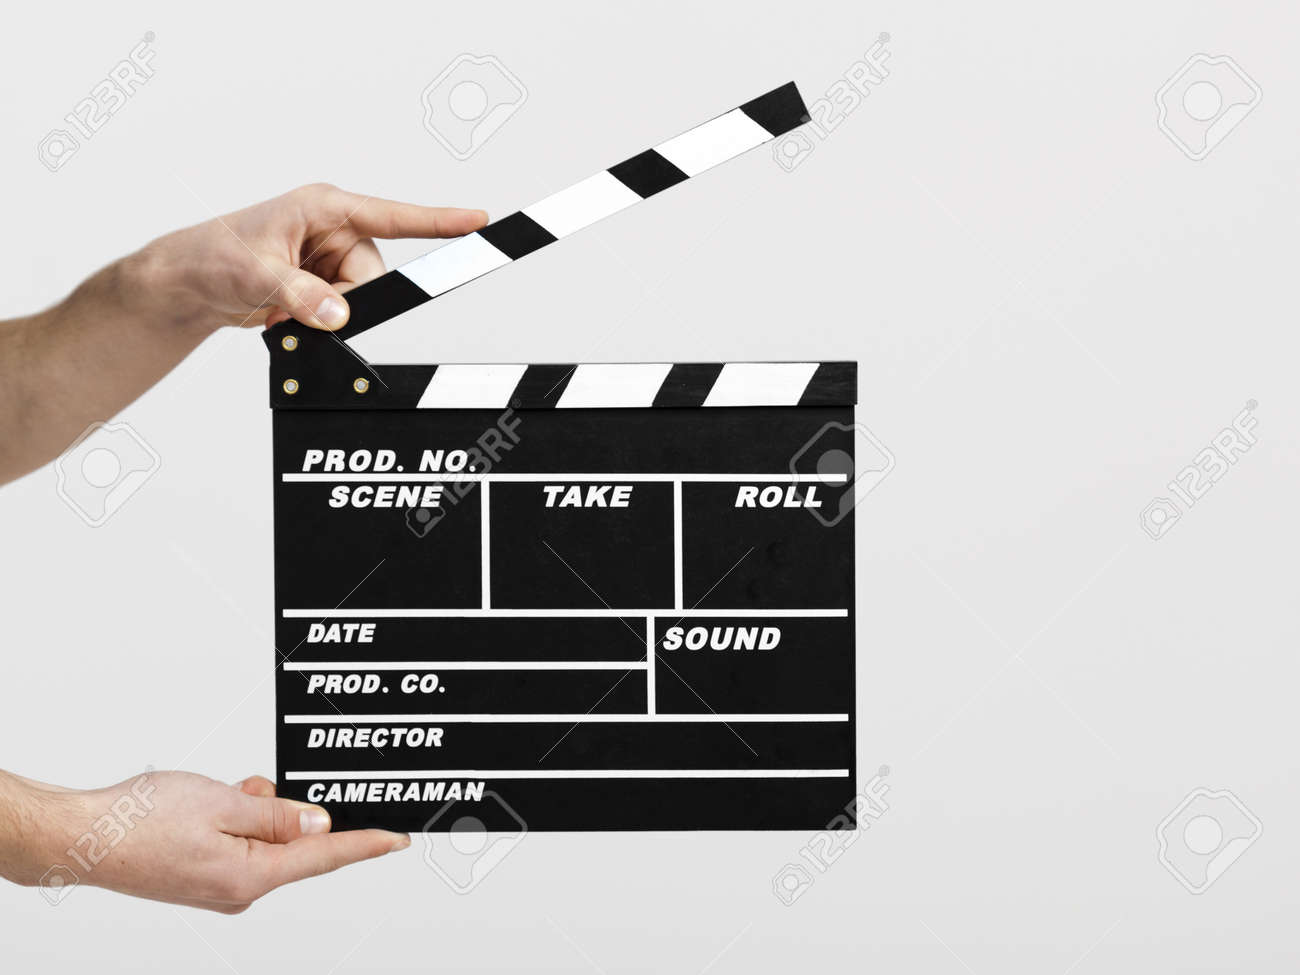 Male hands holding a clapboard, great conceptual image for ex, a new start your business - 13359209